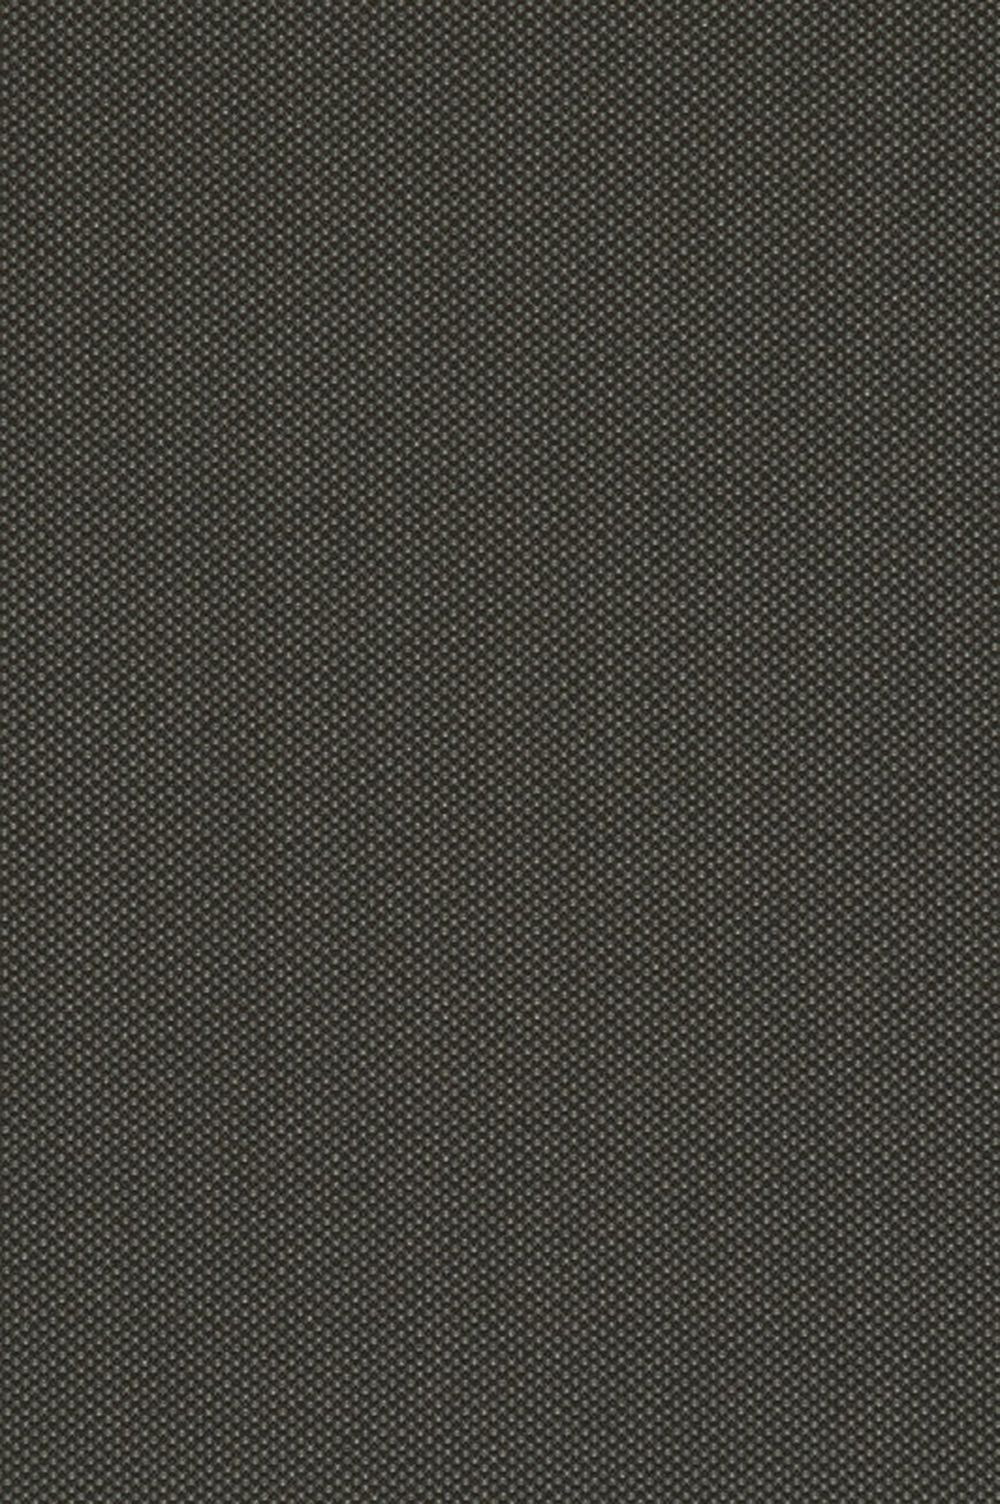 Photo of the fabric Zellij Onyx 862 swatch by Mokum. Use for Upholstery Heavy Duty, Accessory. Style of Plain